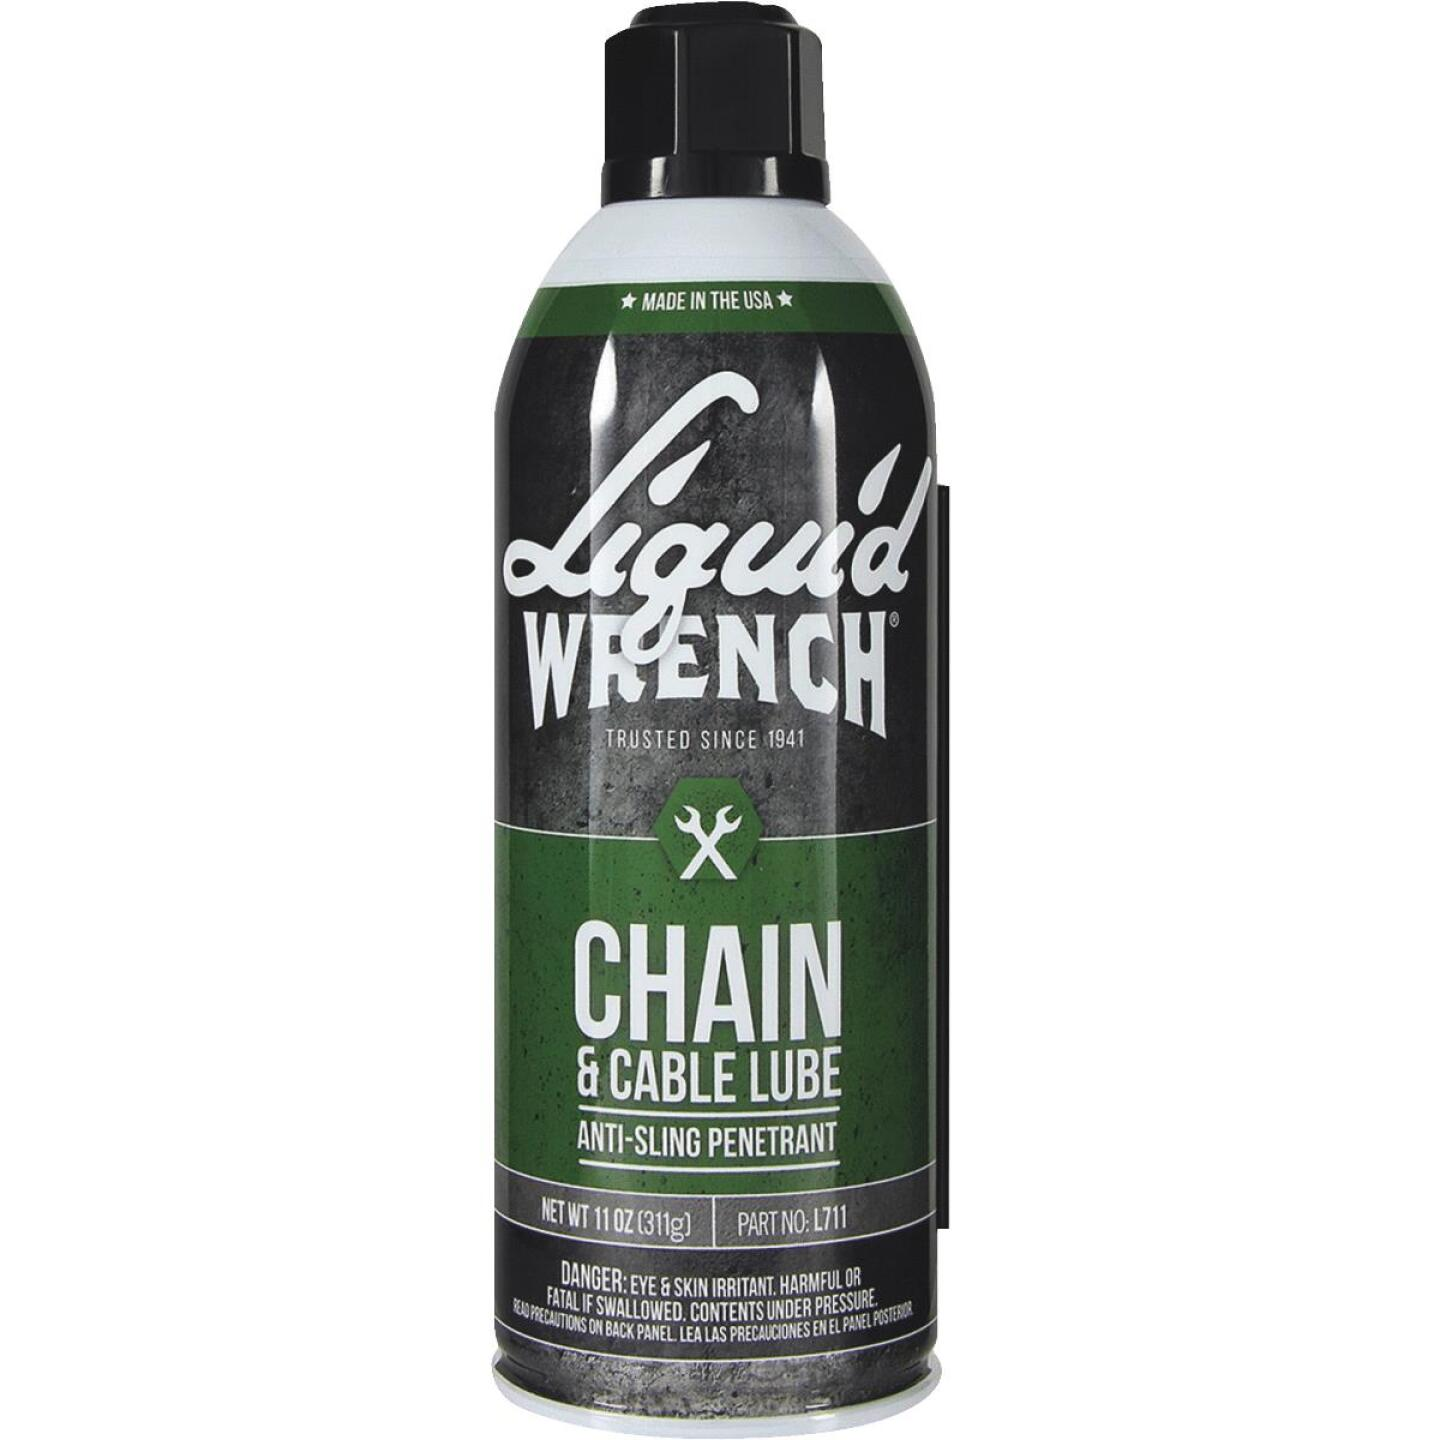 Liquid Wrench 11 Oz. Aerosol Spray Cable and Chain Lubricant Image 1